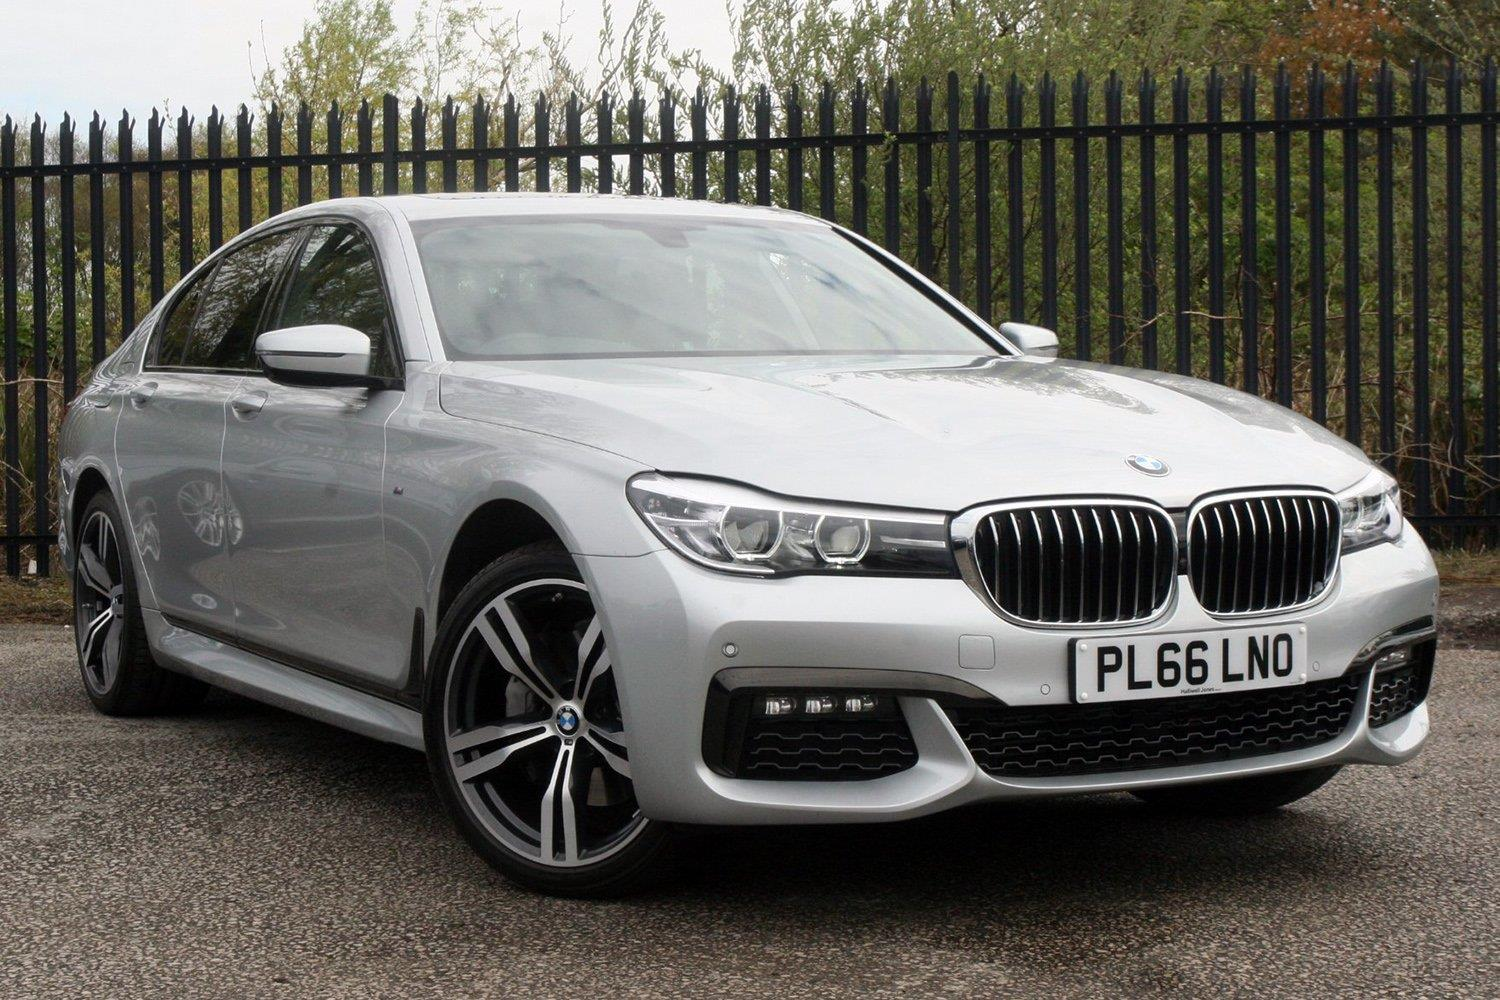 BMW 7 Series Saloon PL66LNO - Image 8